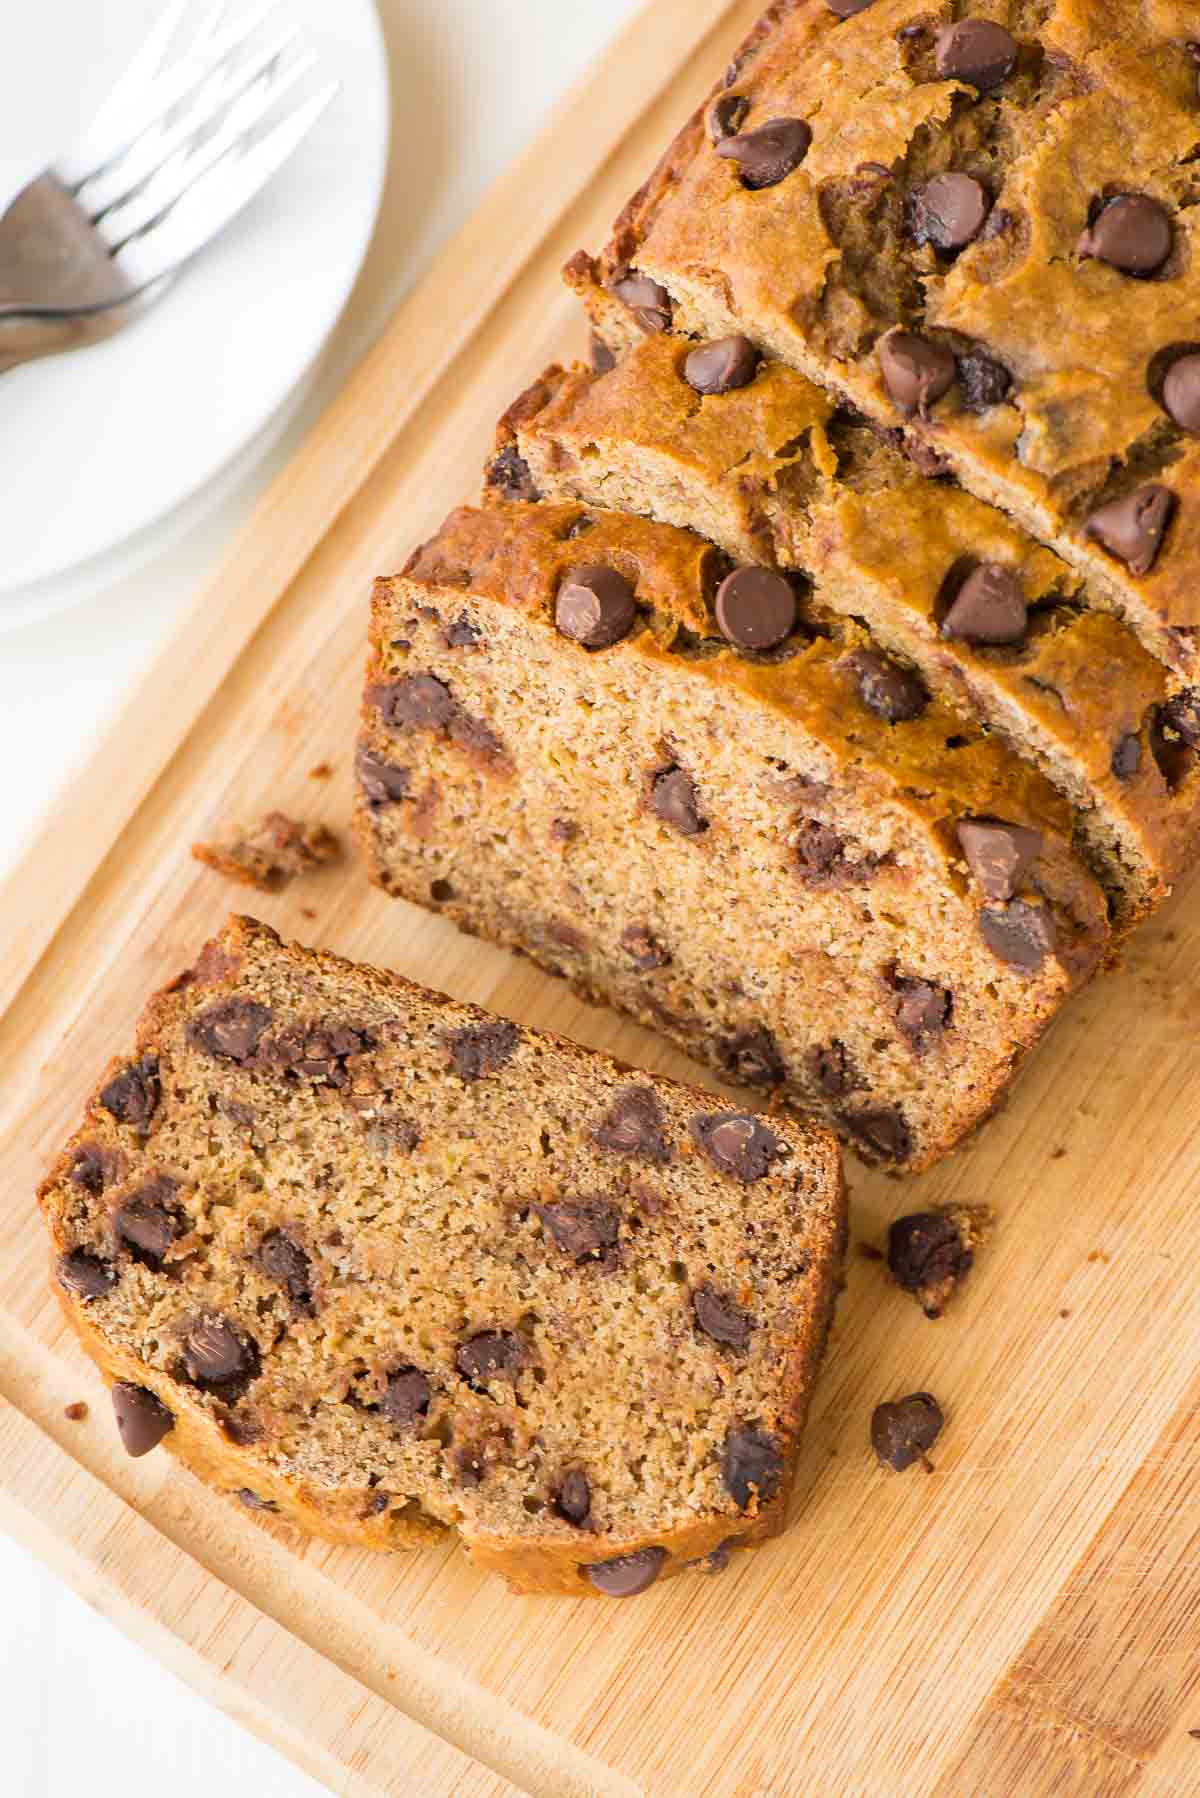 Healthy Protein Banana Bread 20 Best Ideas Healthy Banana Bread Recipe with Chocolate Chips